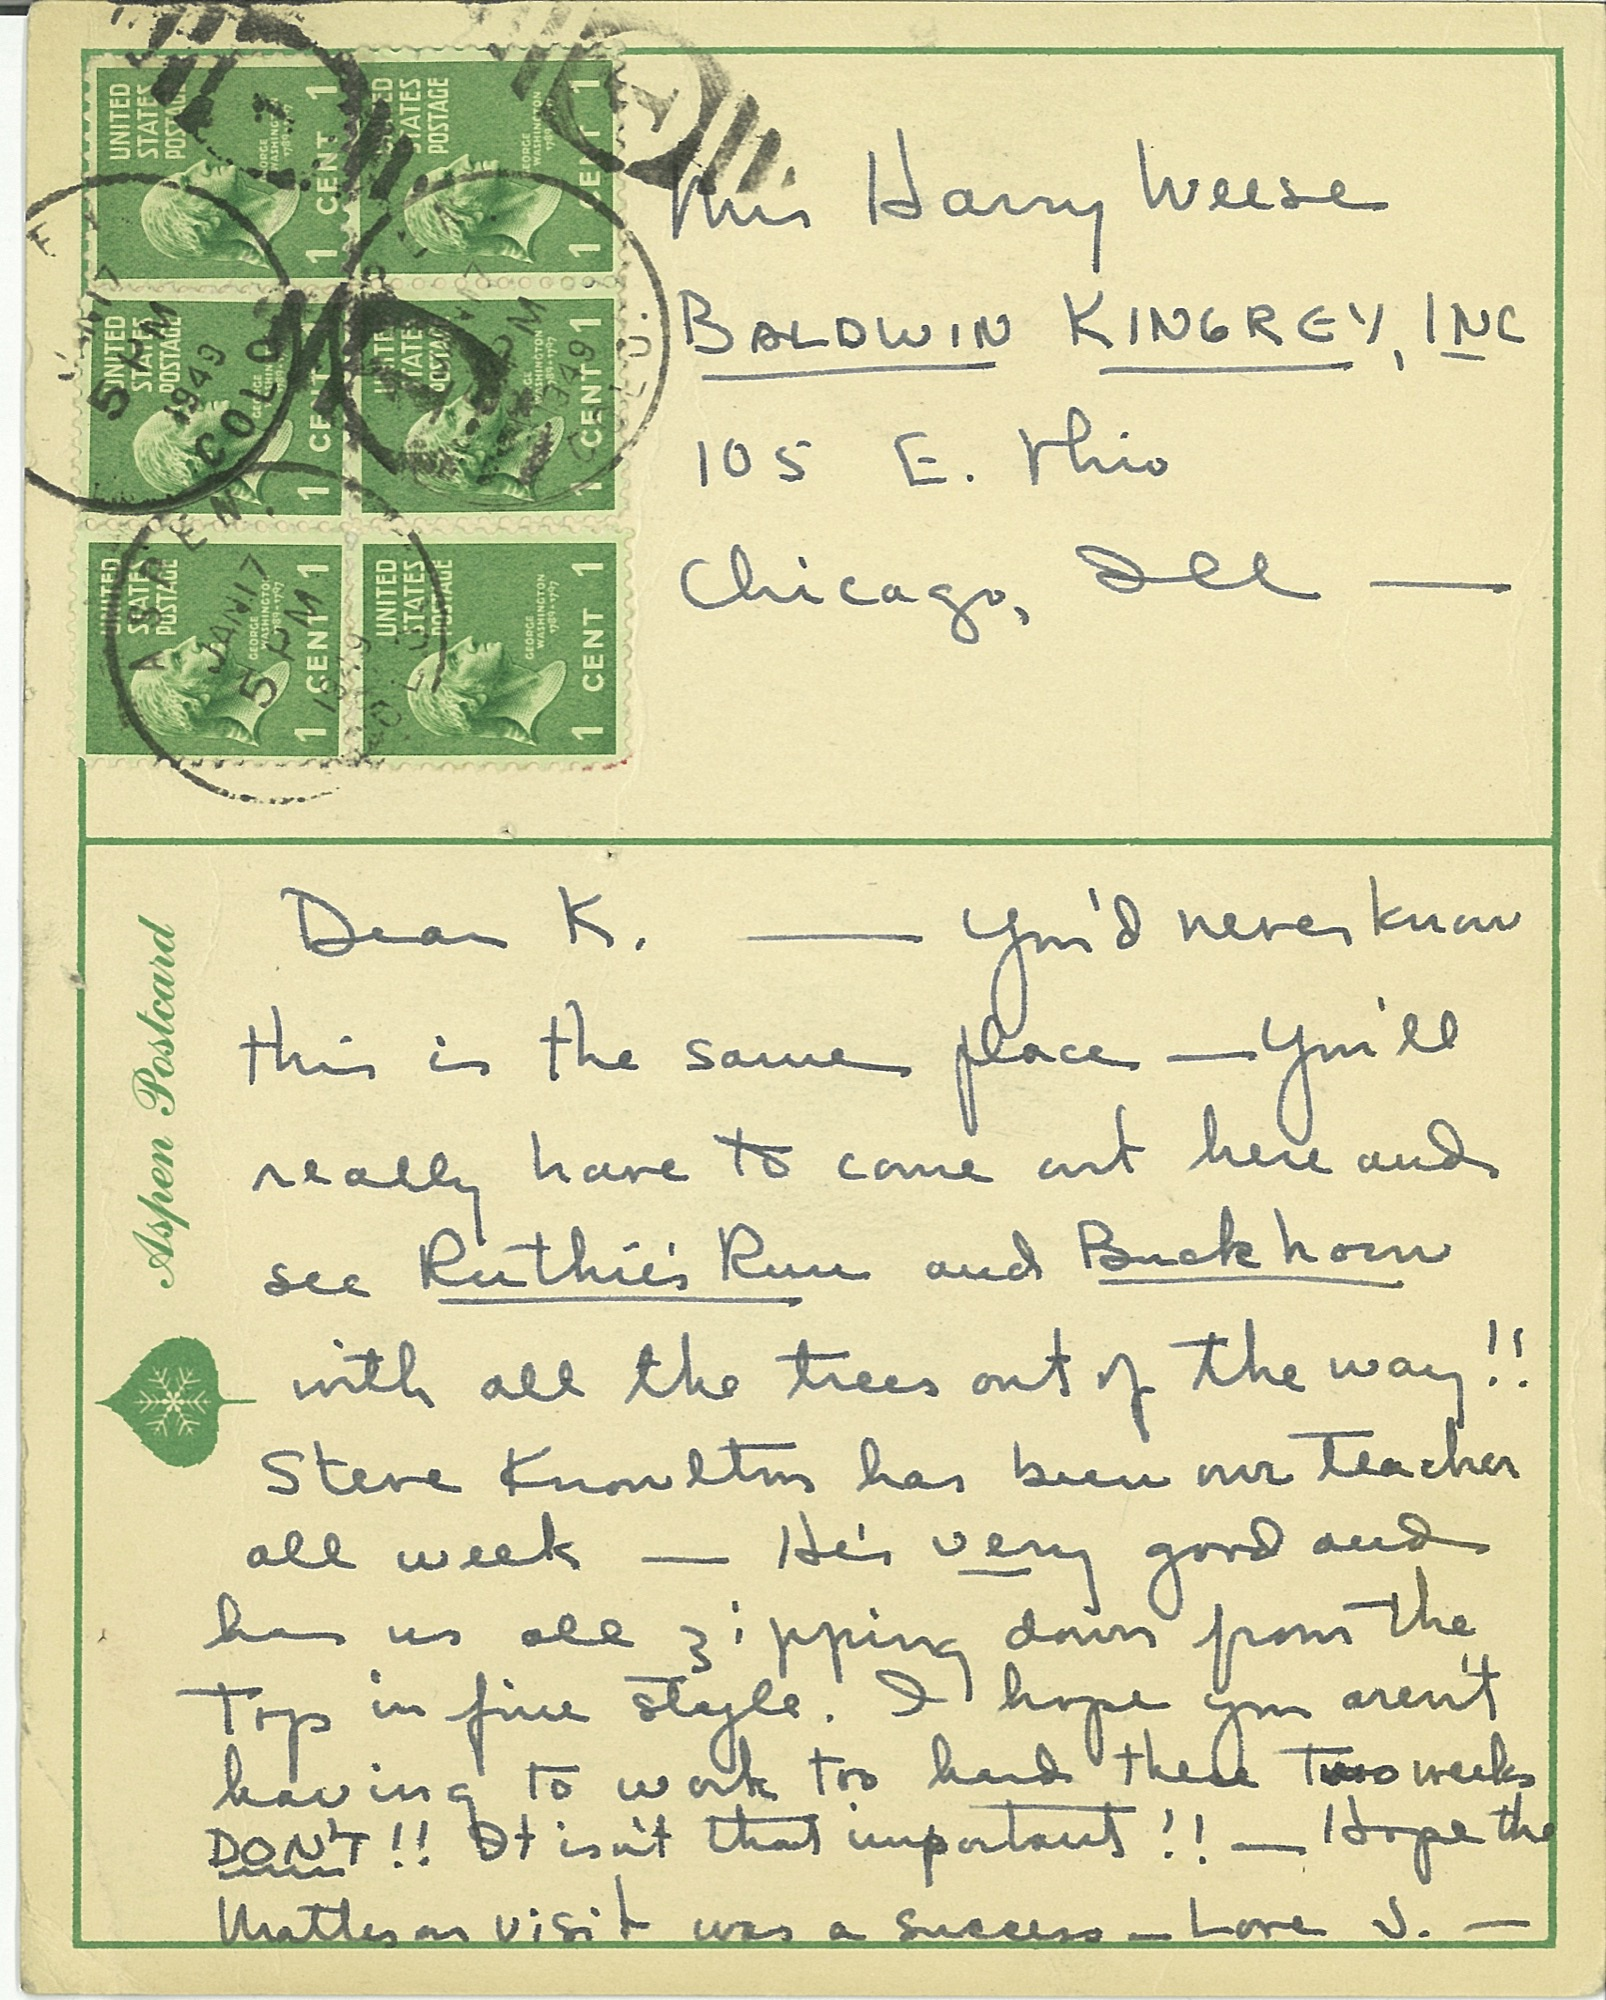 Postcard to Mrs Harry Weese, postmarked Aspen, January 17, 5 PM, 1949